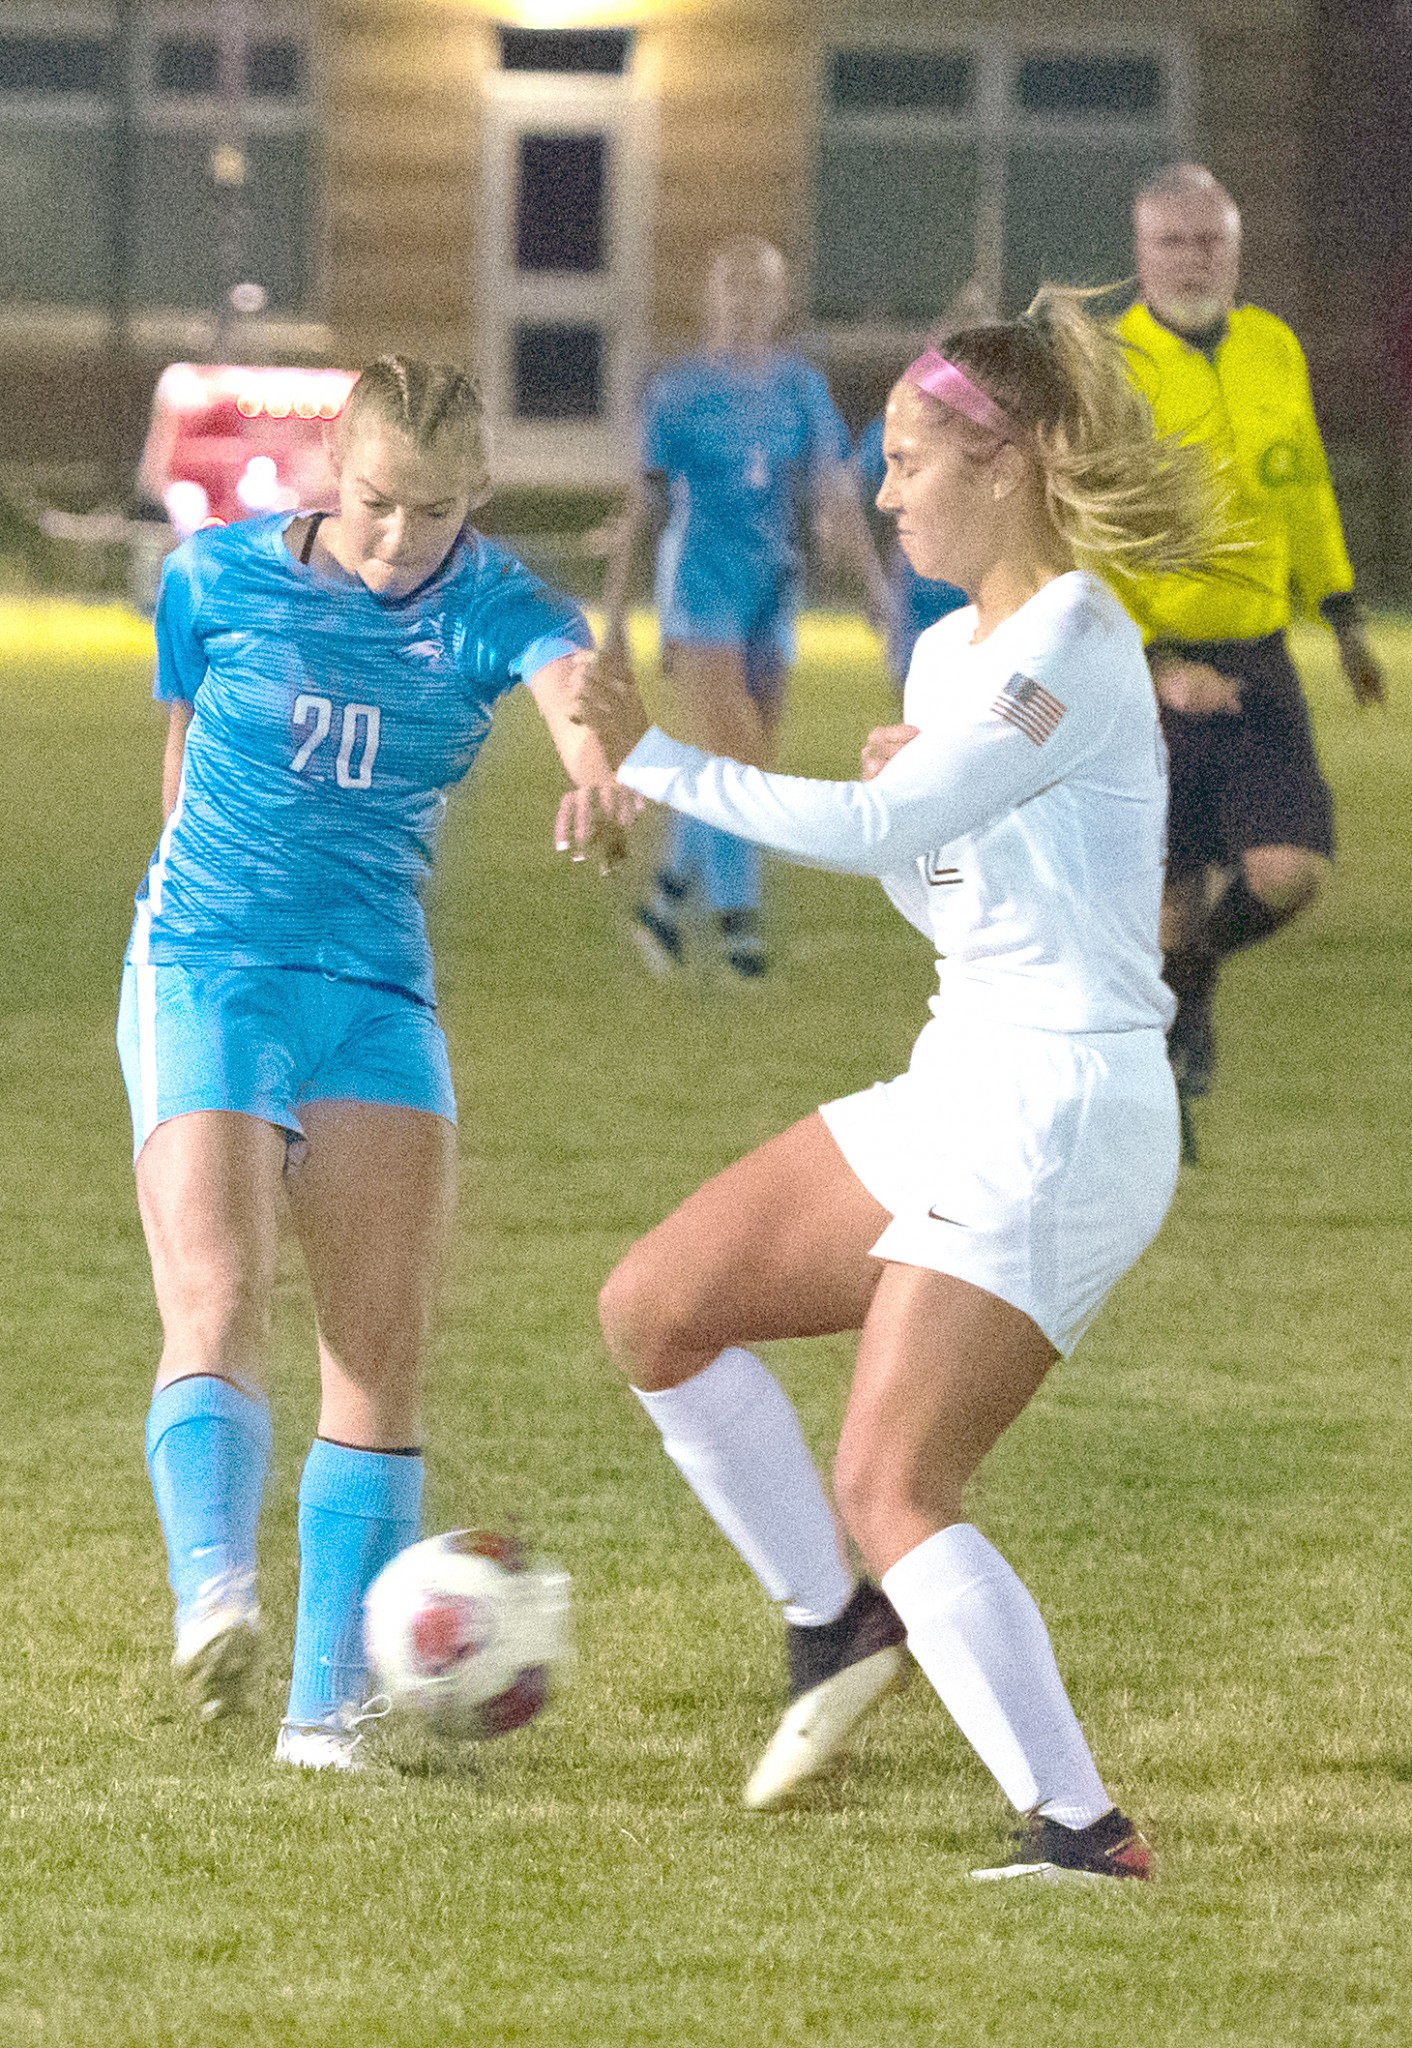 """First team All-Ohioan MaKenna Souder (left). (Press photo by Russ Lytle/<a href=""""http://www.Facebook.com/RussLytle/RHP"""">www.Facebook.com/RussLytle/RHP</a>)"""